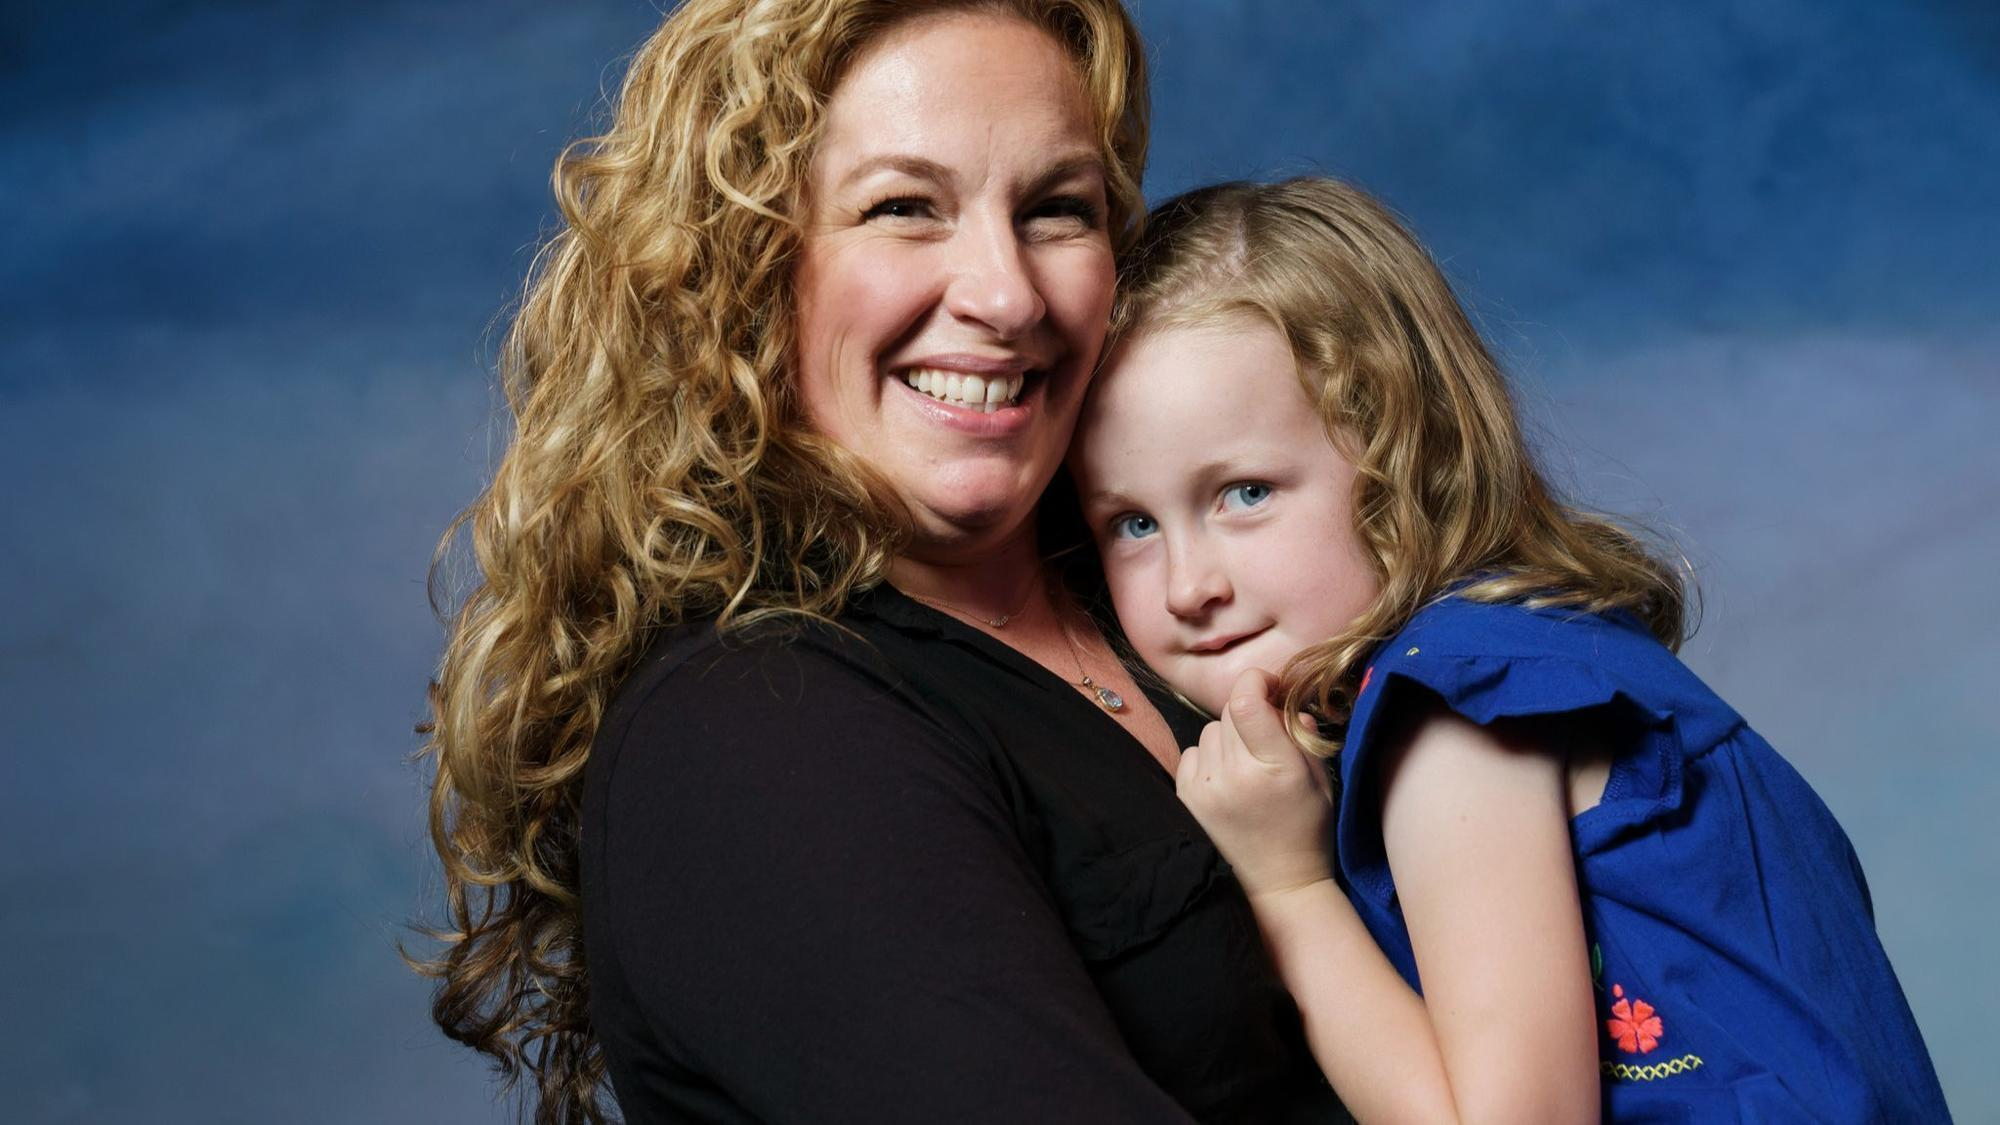 Playwright Molly Smith Metzler's 'Cry It Out' takes a hard look at motherhood